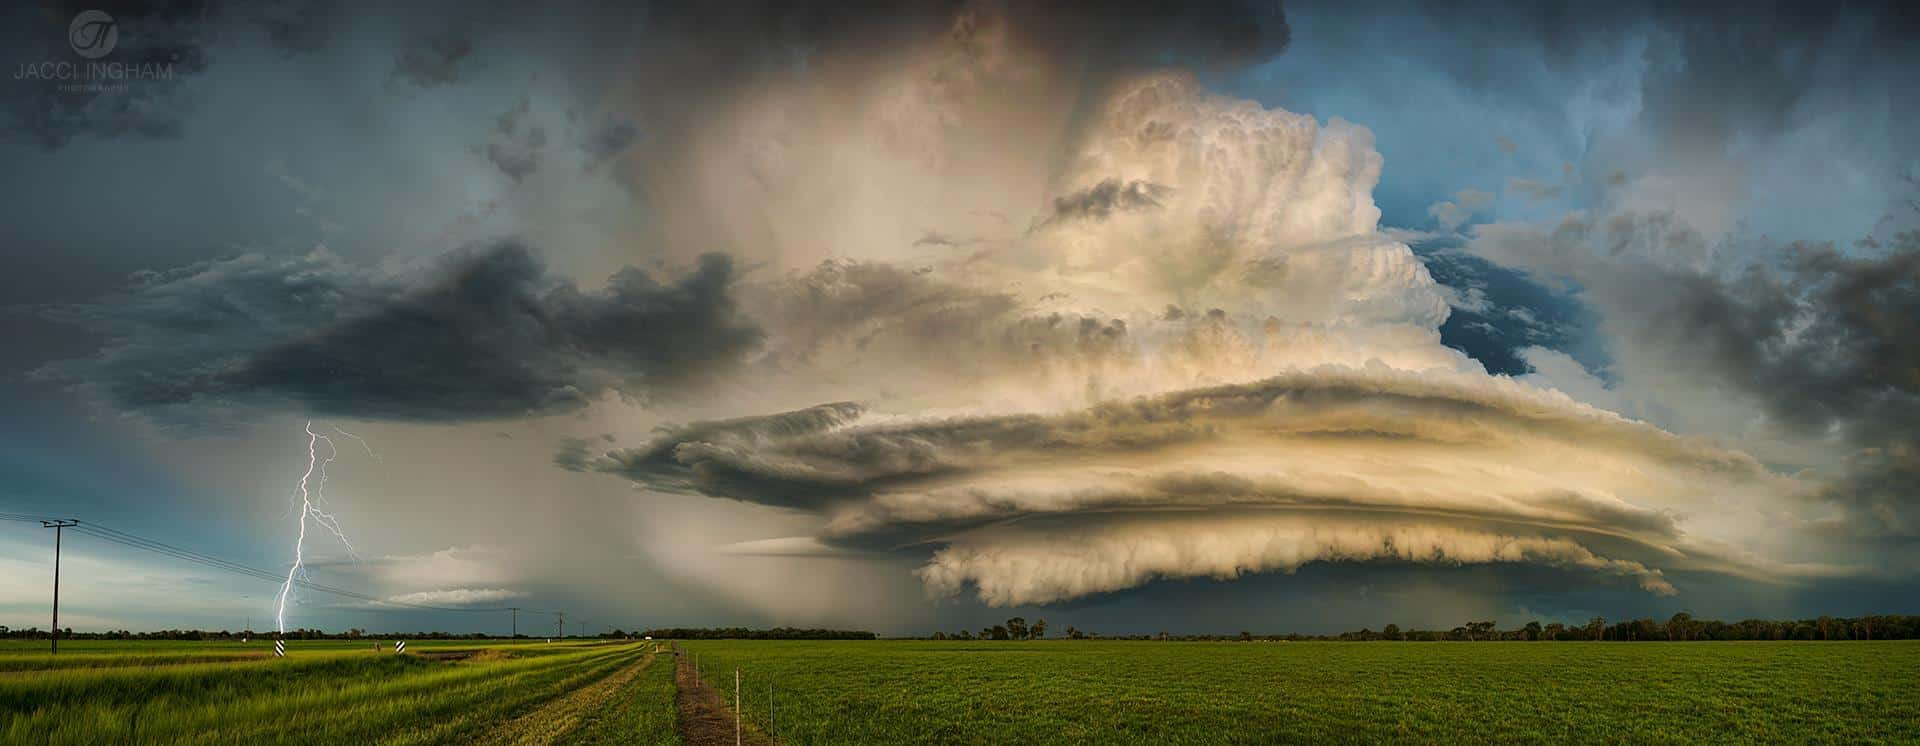 The Woolner Station Supercell from 18th Feb 2015. Darwin Region, Northern Territory Australia. Stitched Panorama with bonus CG